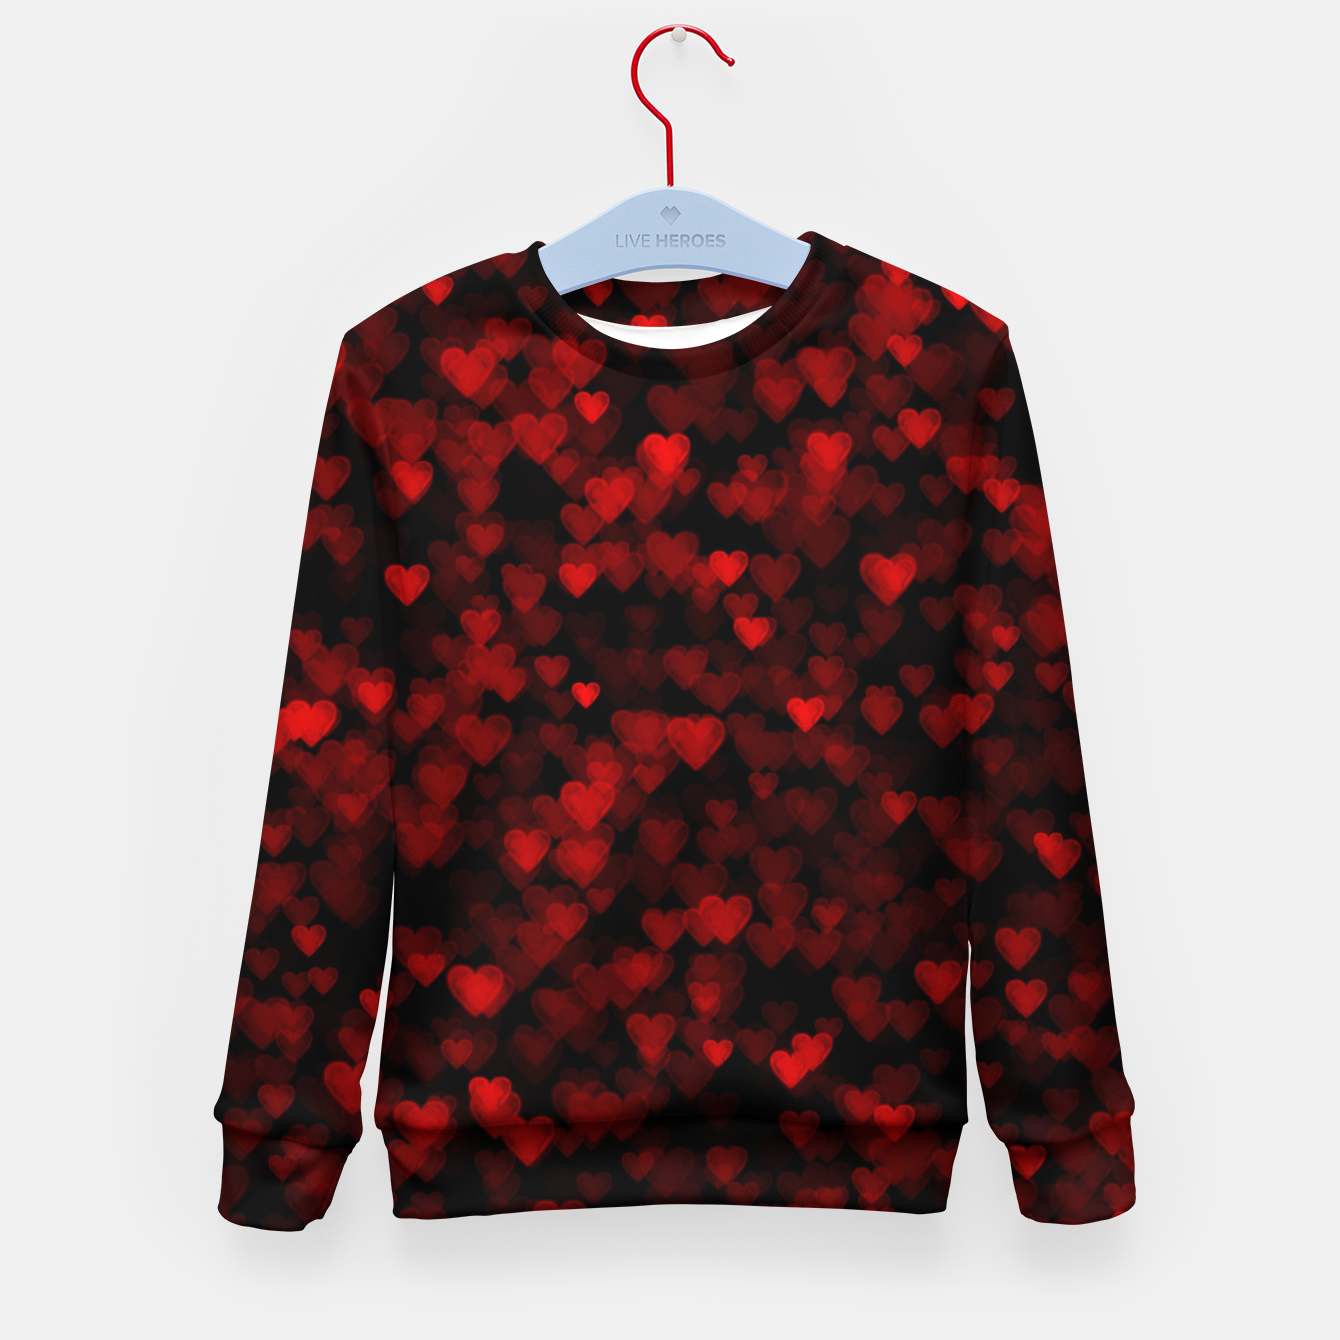 Foto Red Hearts Blurry Vision Dark Black Romantic Love Kid's sweater - Live Heroes